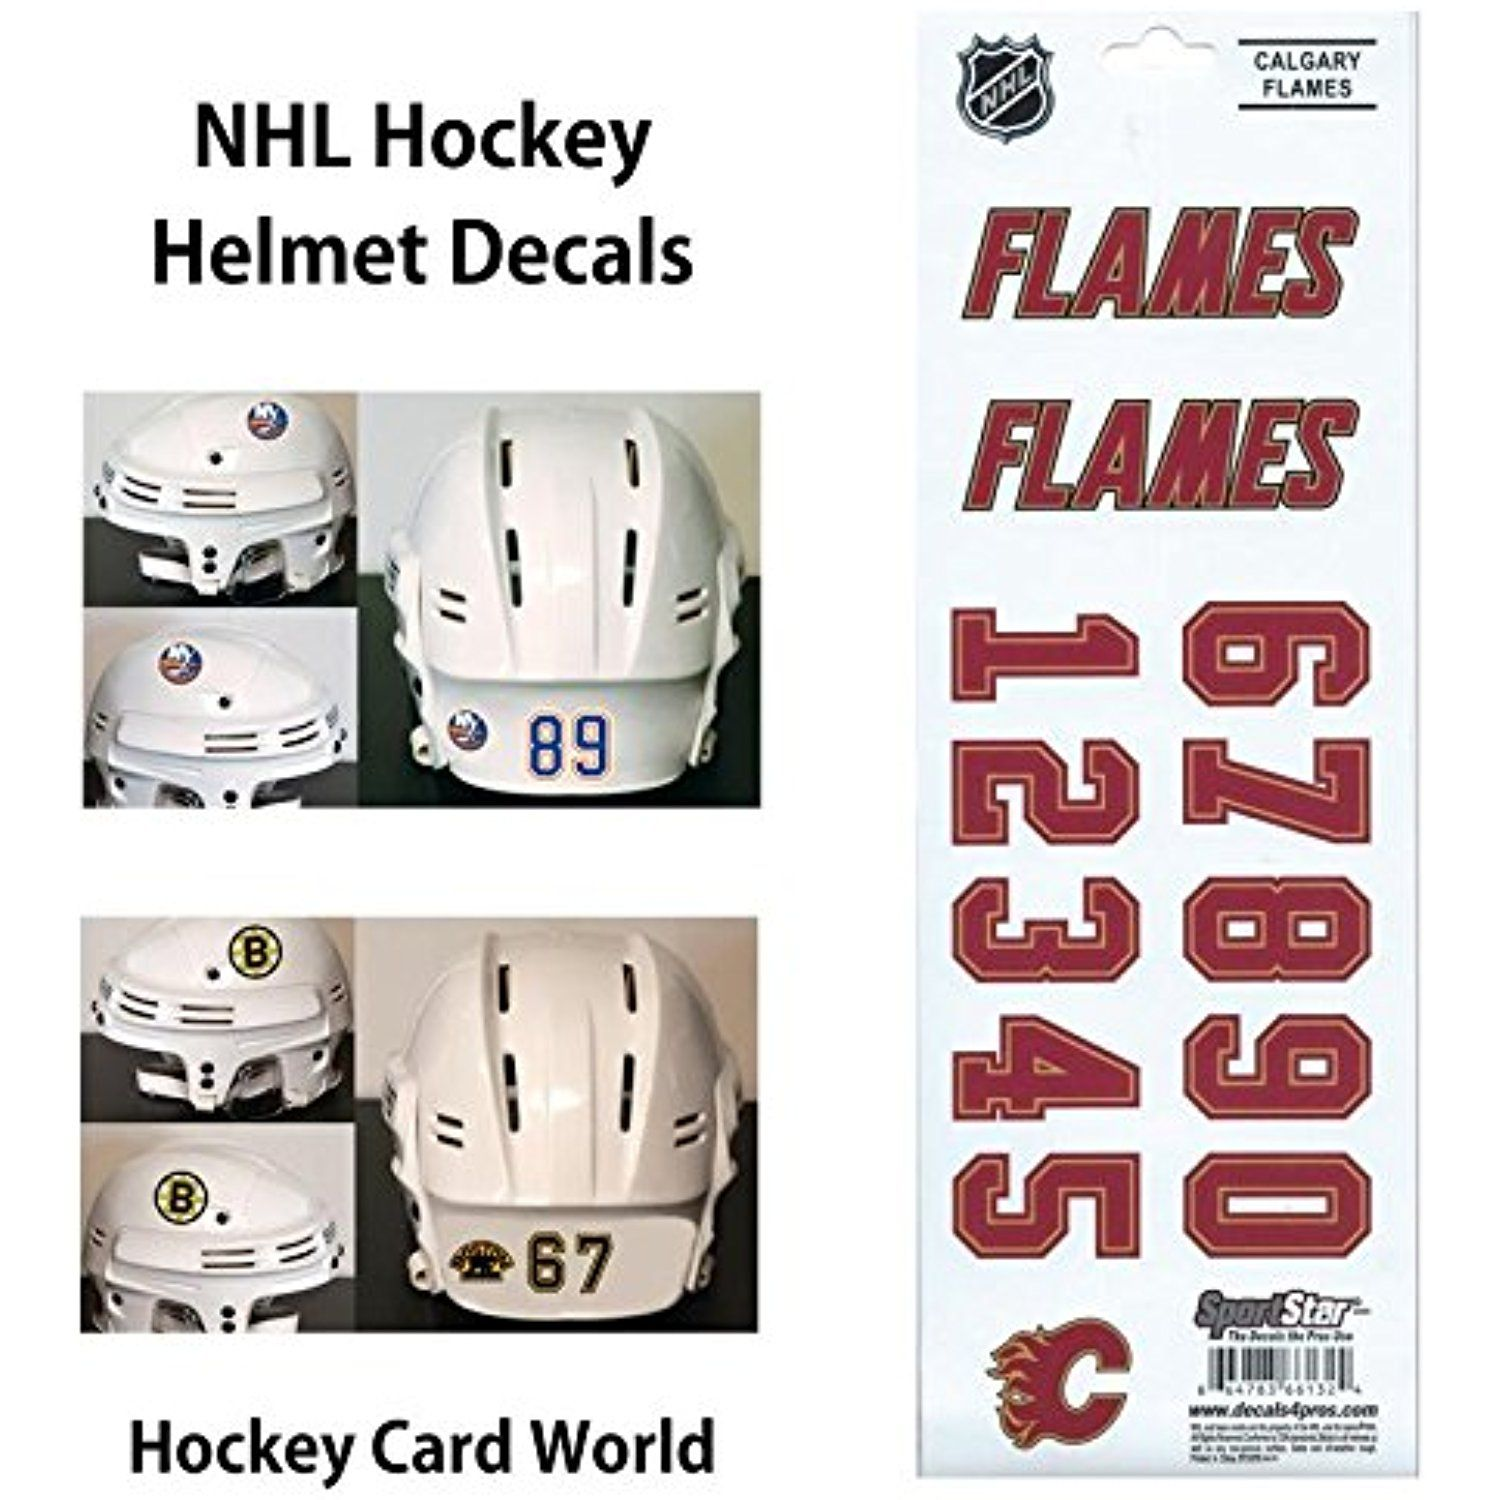 Hcw Calgary Flames Sportsstar Nhl Hockey Helmet Decals Sticker Sheet Read More Reviews Of The Product By Hockey Helmet Sports Collectibles Calgary Flames